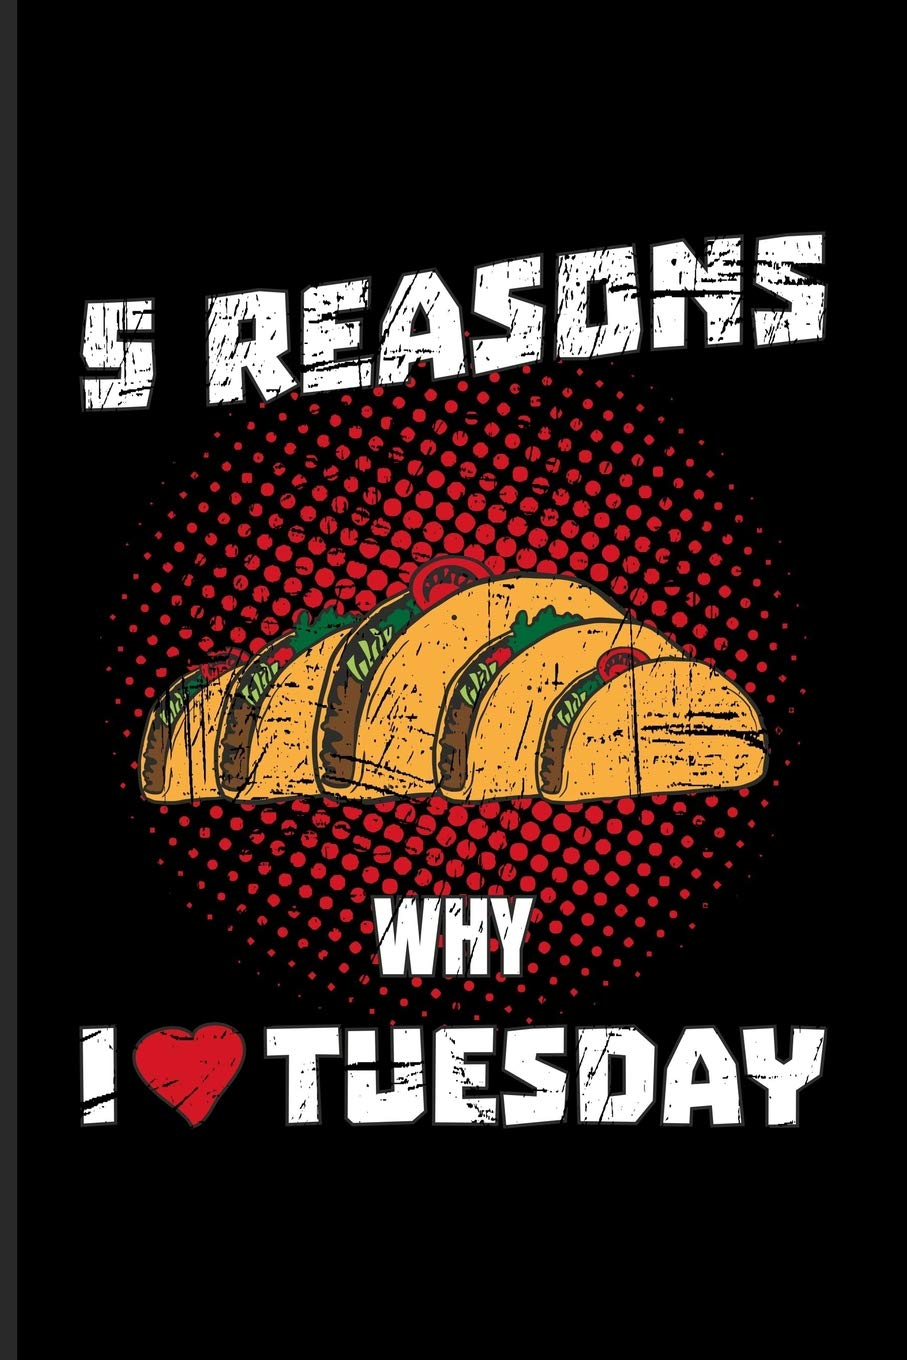 5 Reasons Why I Tuesday: Funny Food Quotes Journal For ...